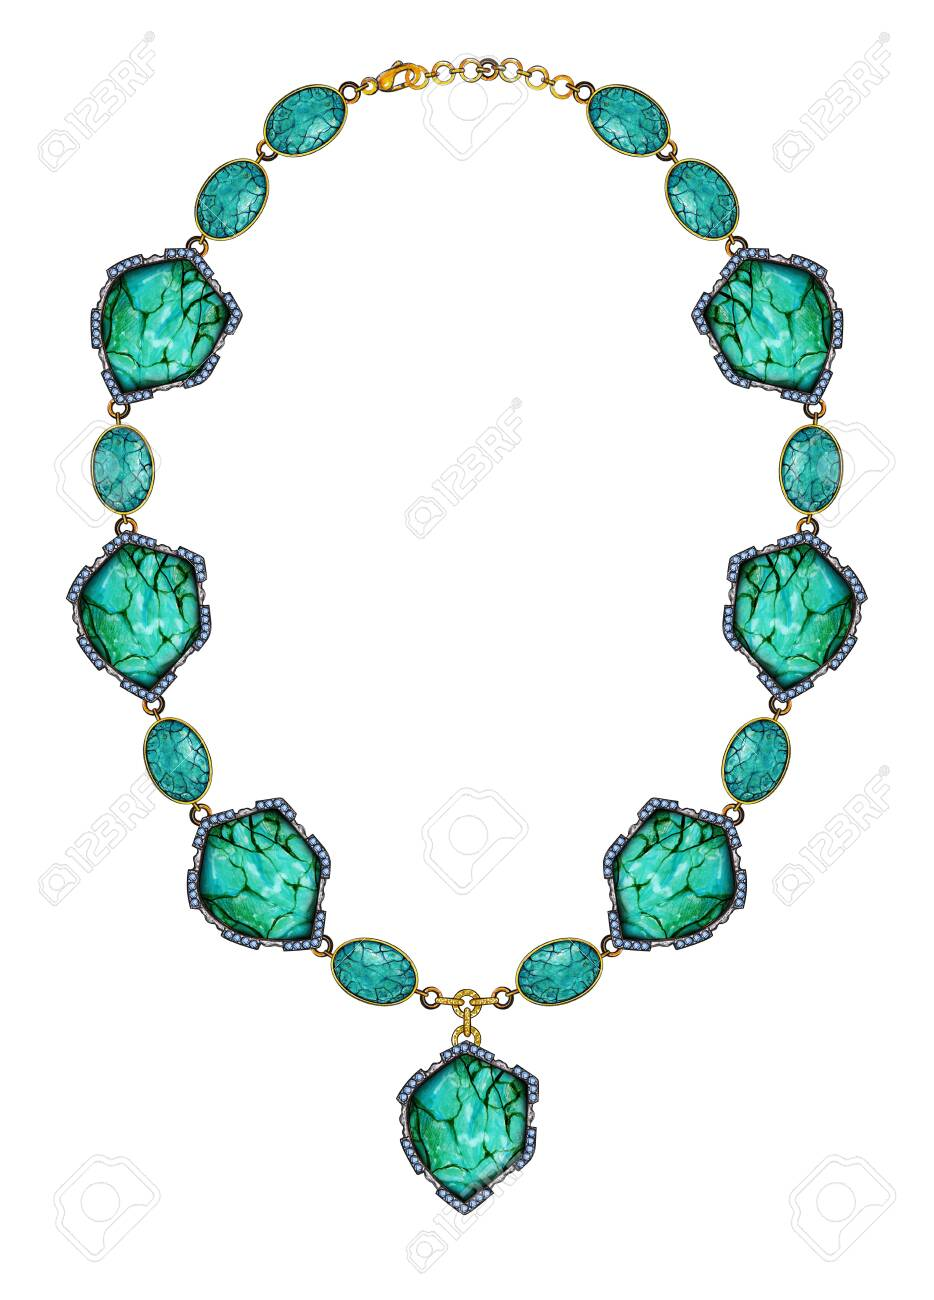 Jewellery Design Art Turquoise Stone Necklace Hand Drawing And